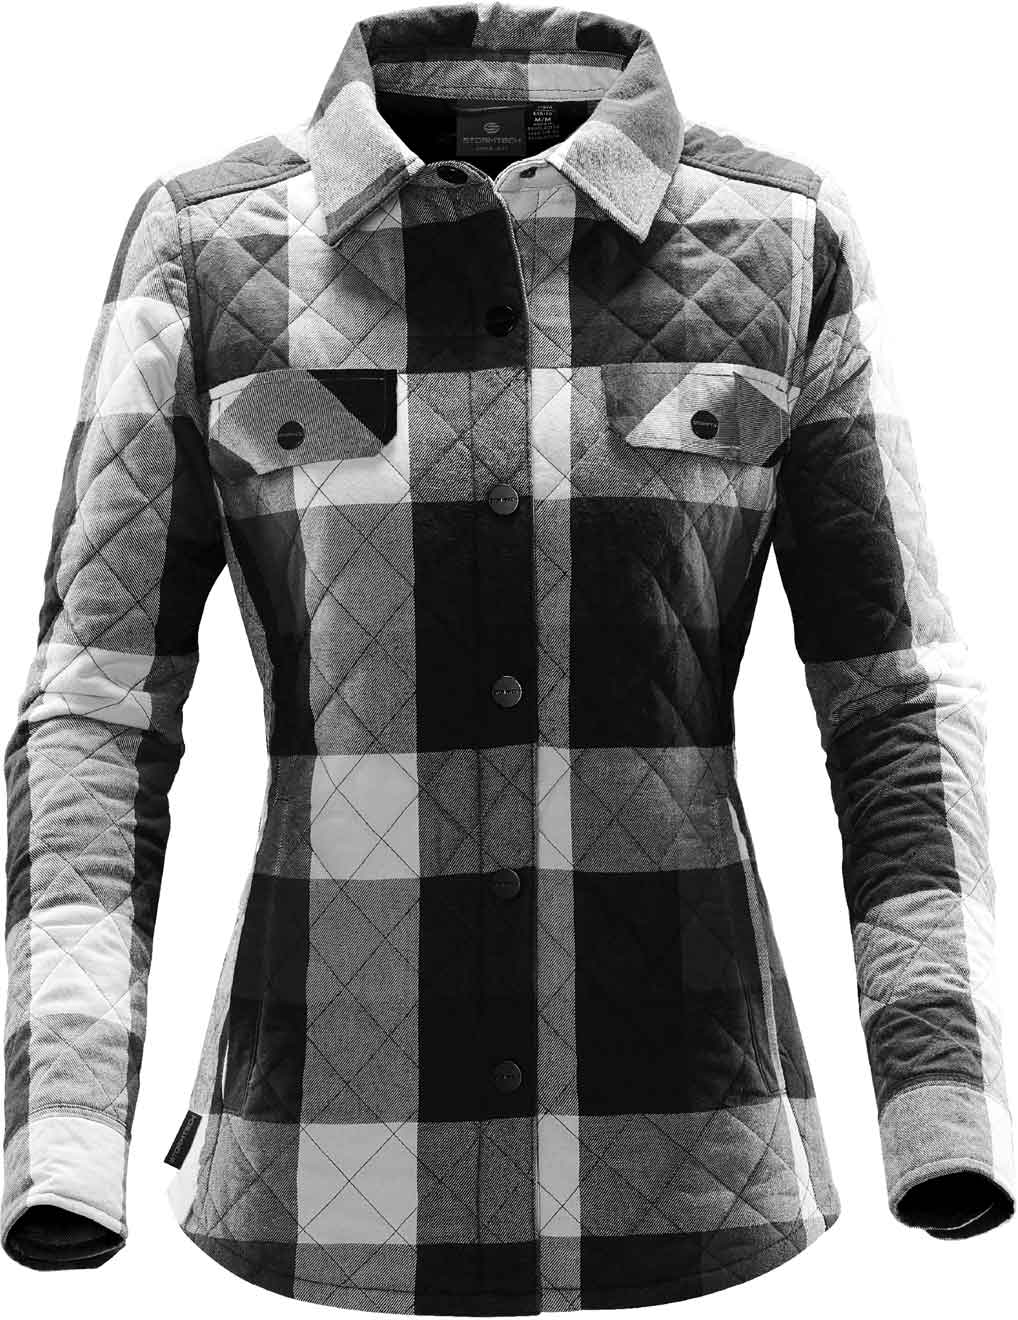 WOMEN'S NORTH BEACH PLAID SHACKET